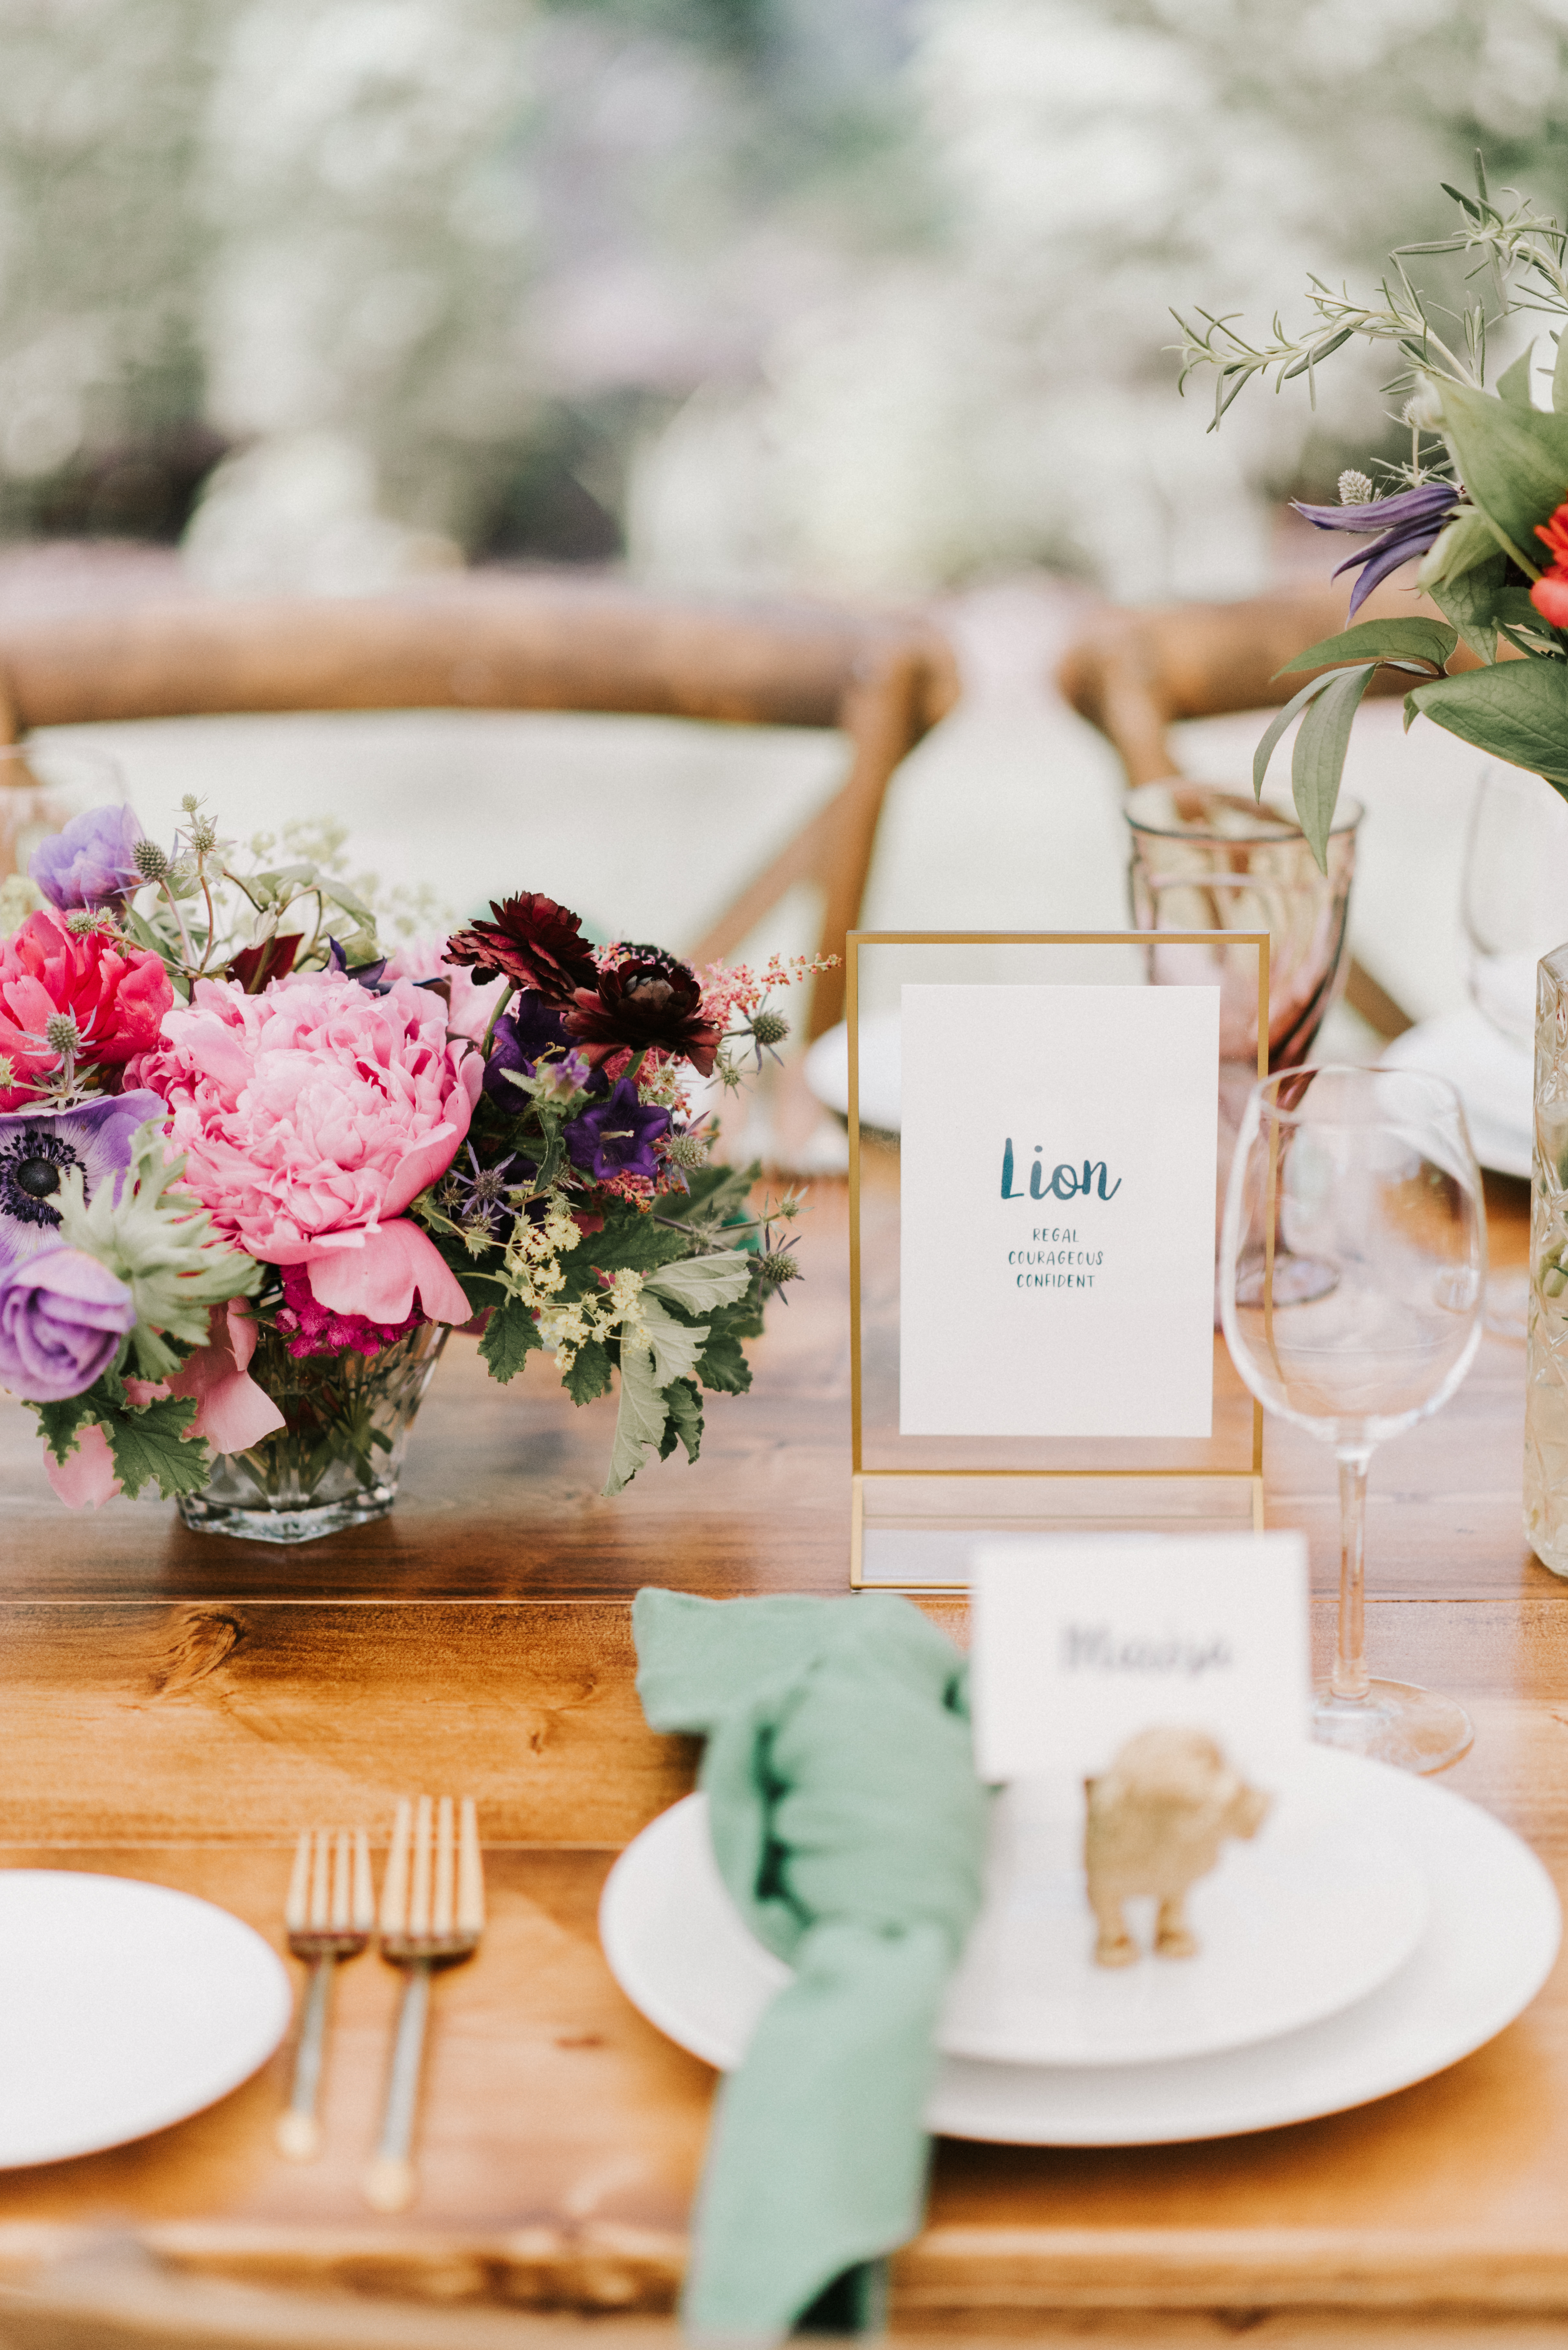 Tablescapes at Hidden Pond wedding in Kennebunkport, Maine